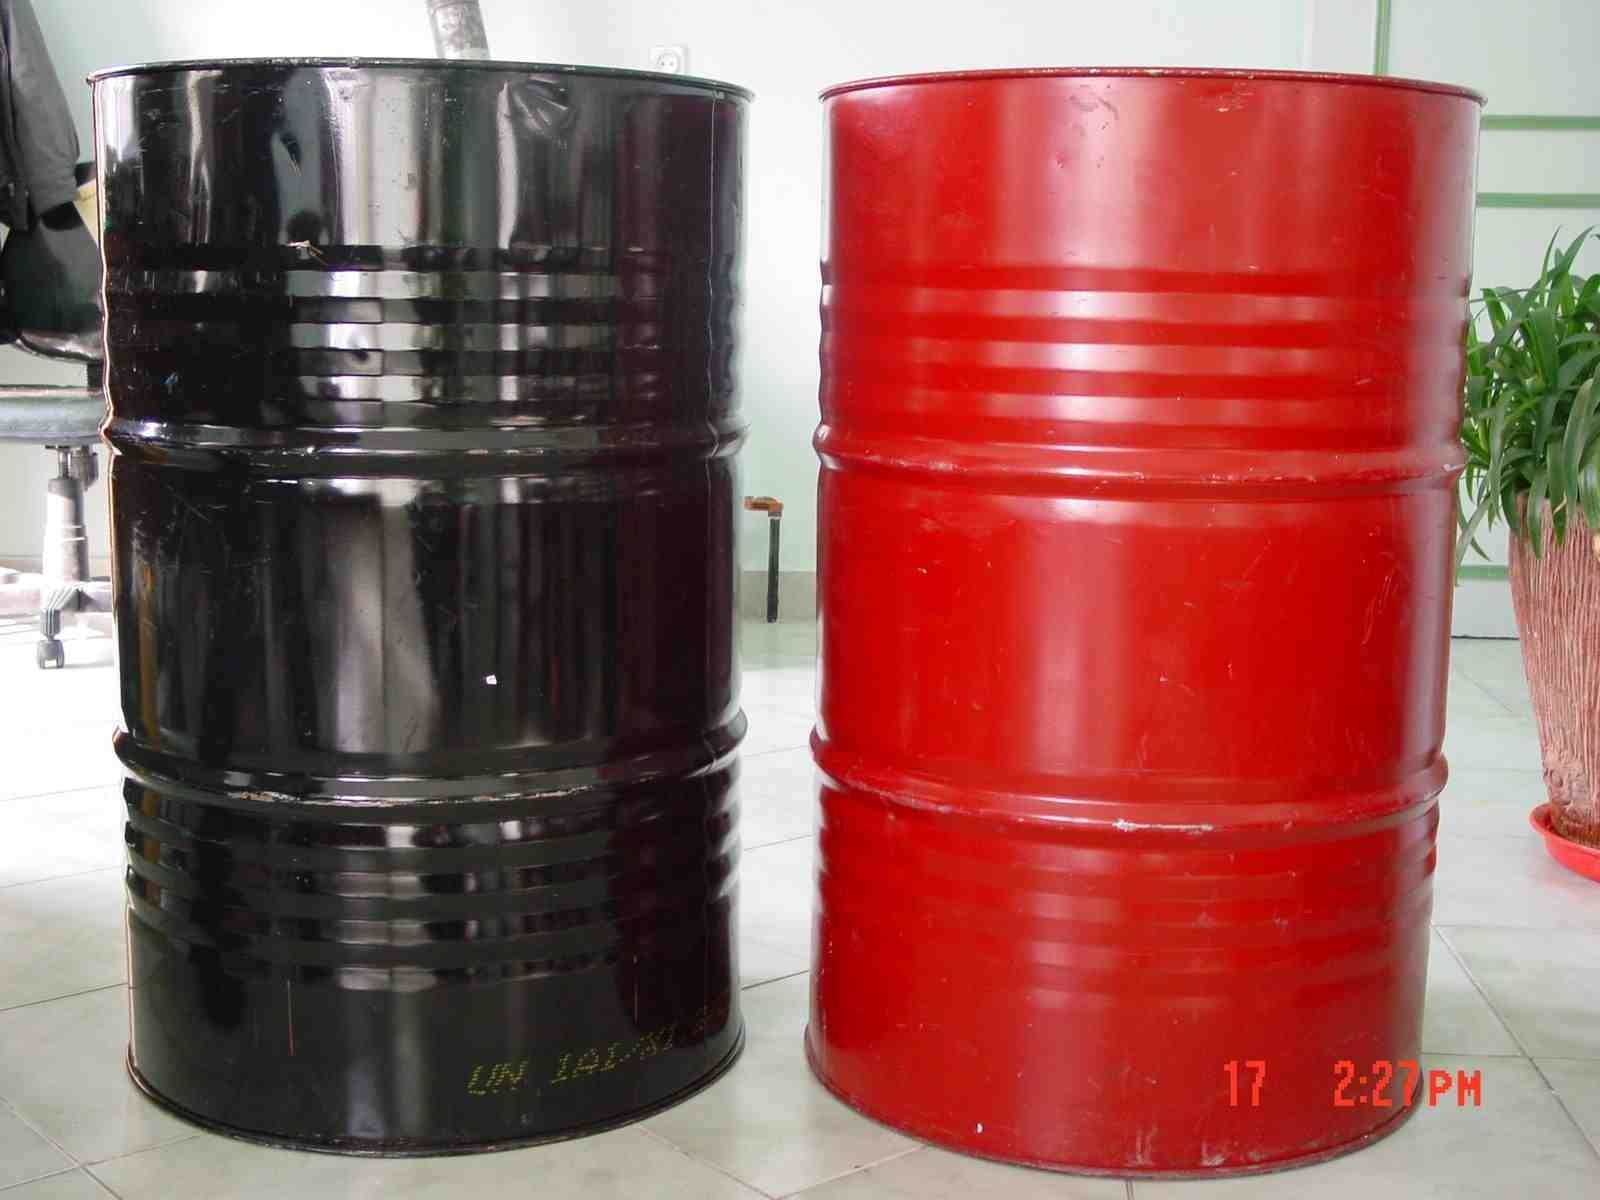 Bitumen 60 70 In New Barrels Drums With Deferred Payment Payment After45 Days Alibaba Com 2013 Barrel Glassware Manufacturing